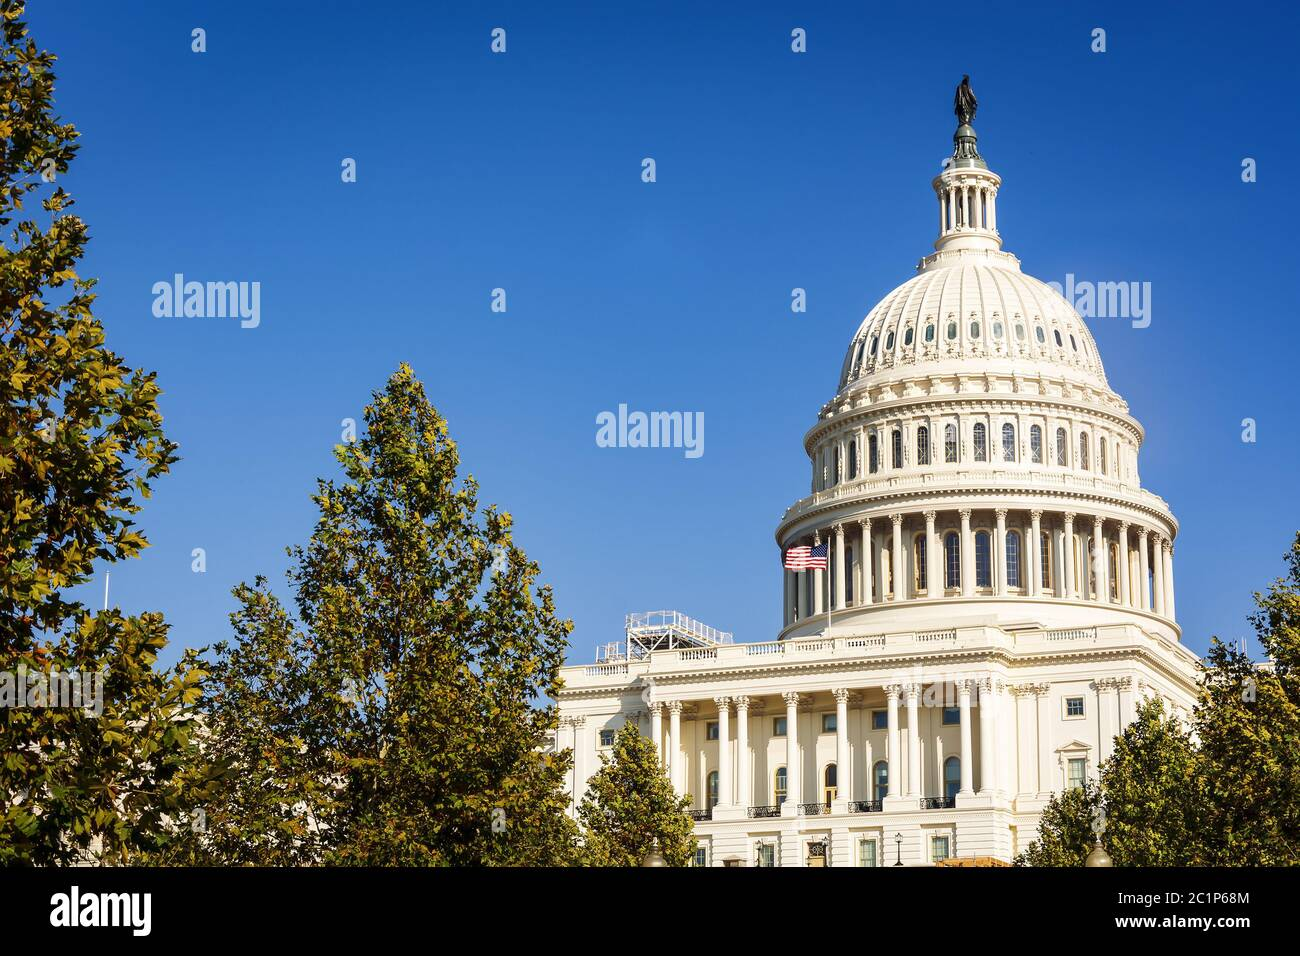 Facade of the United States Congress on Capitol Hill, Washington DC Stock Photo